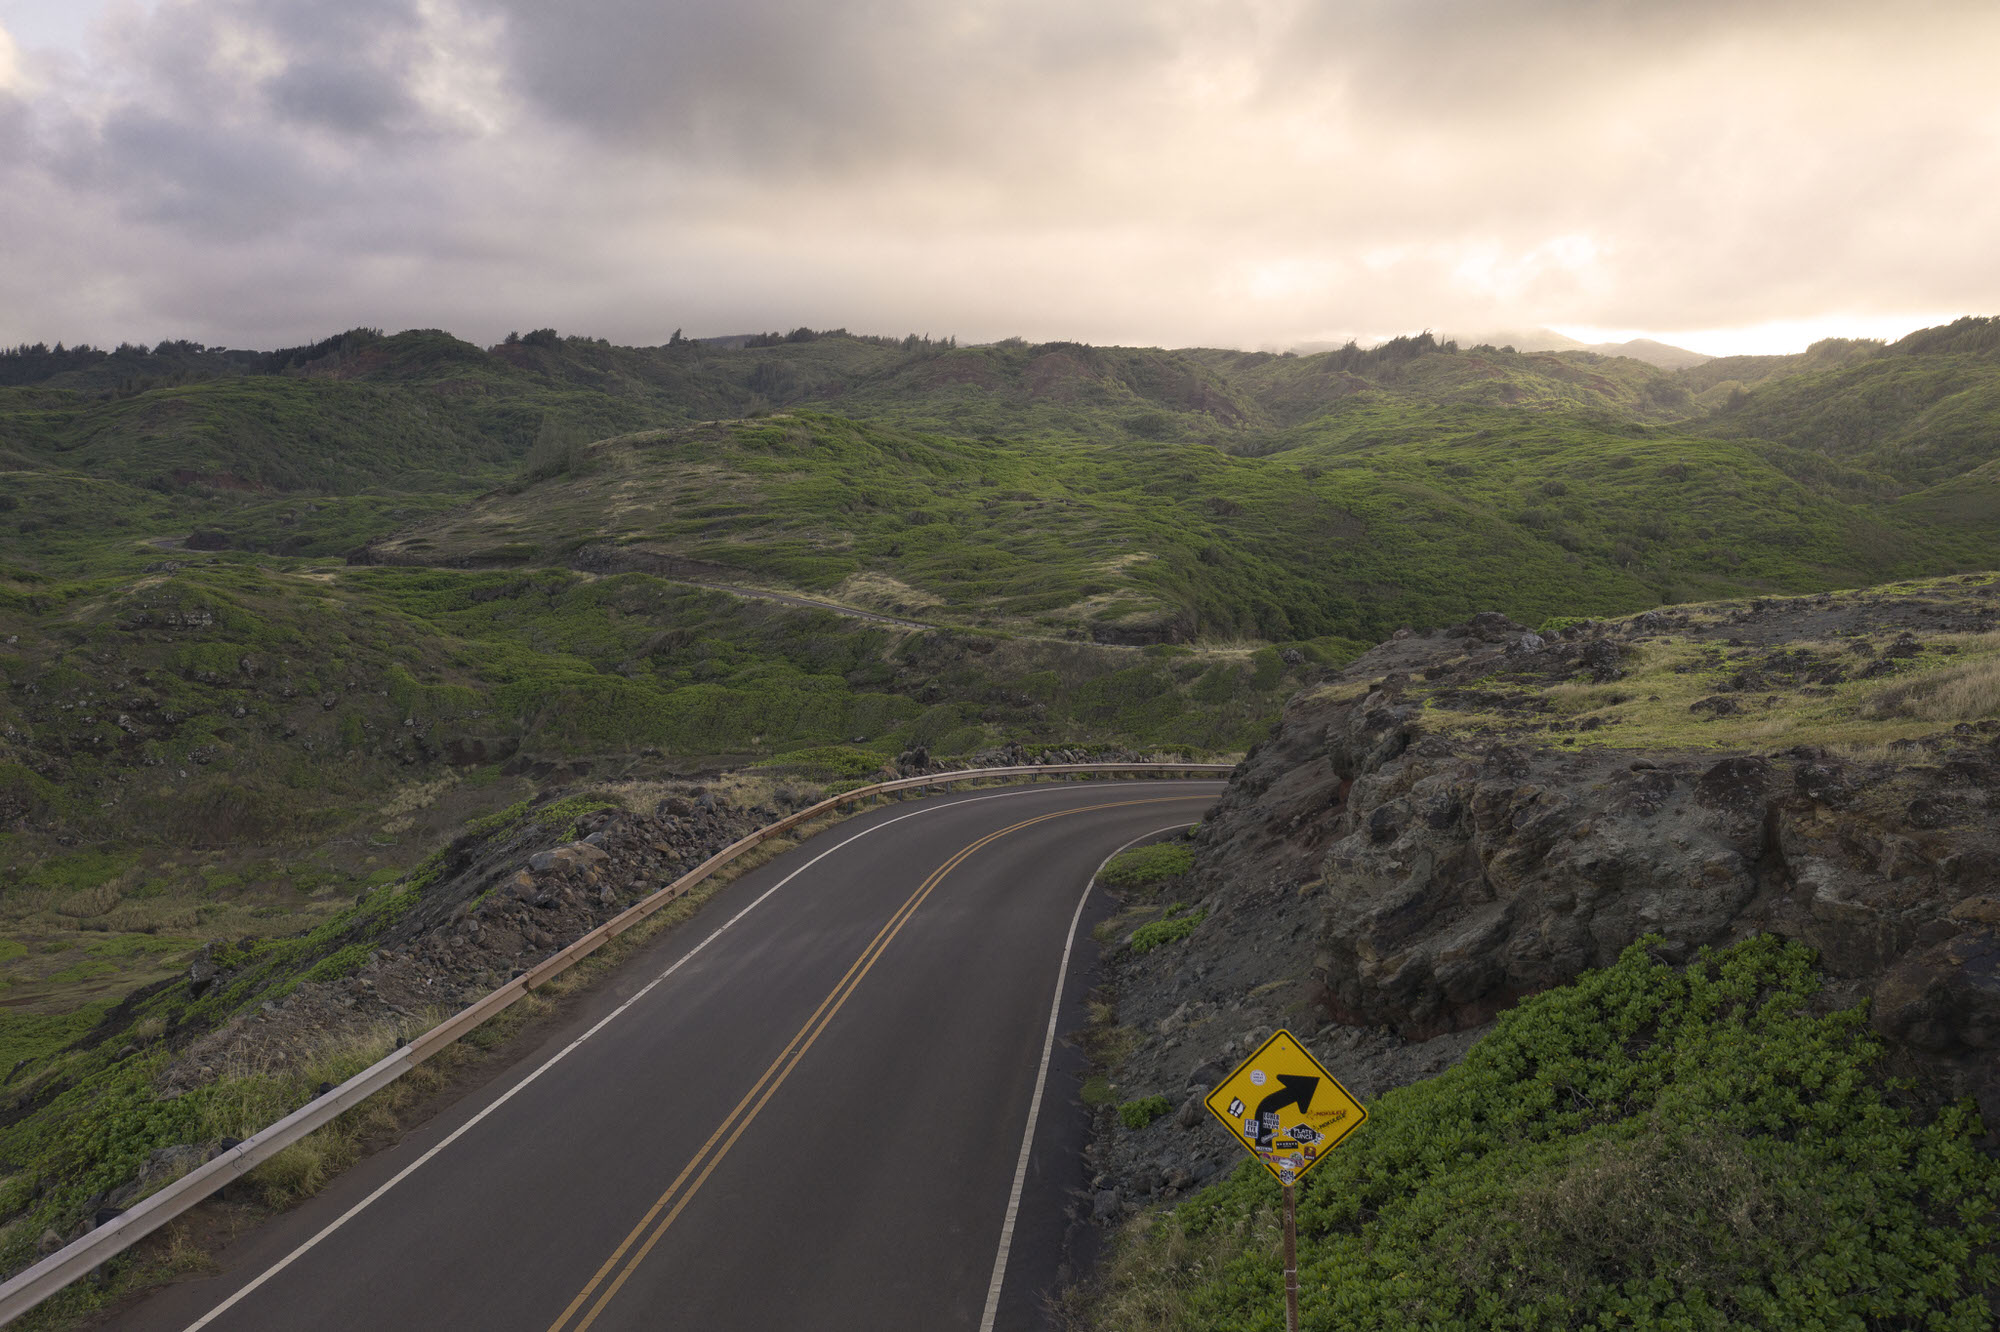 Kahekili Highway in Maui, Hawaii